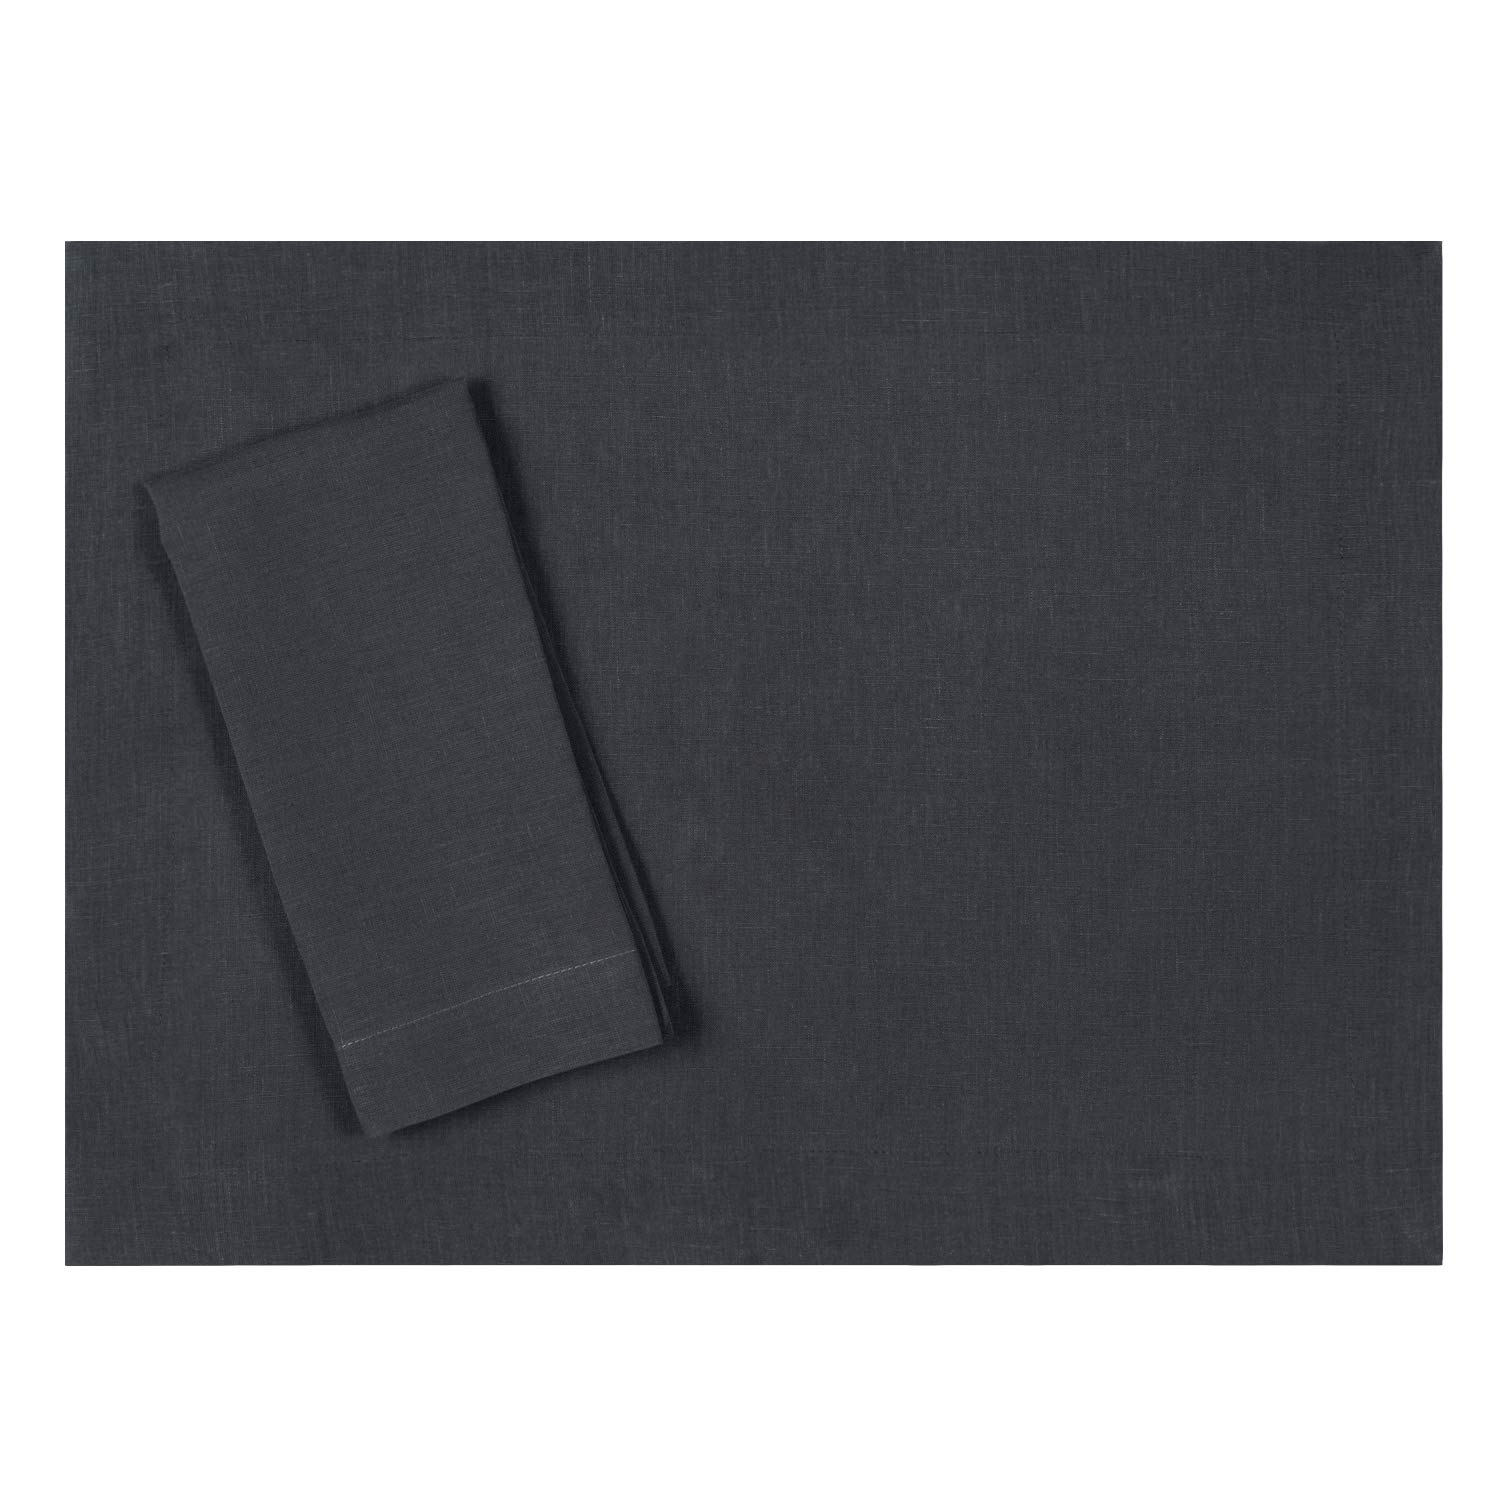 Huddleson Slate Charcoal Grey Pure Linen Placemat 15x20 (Set of Four)